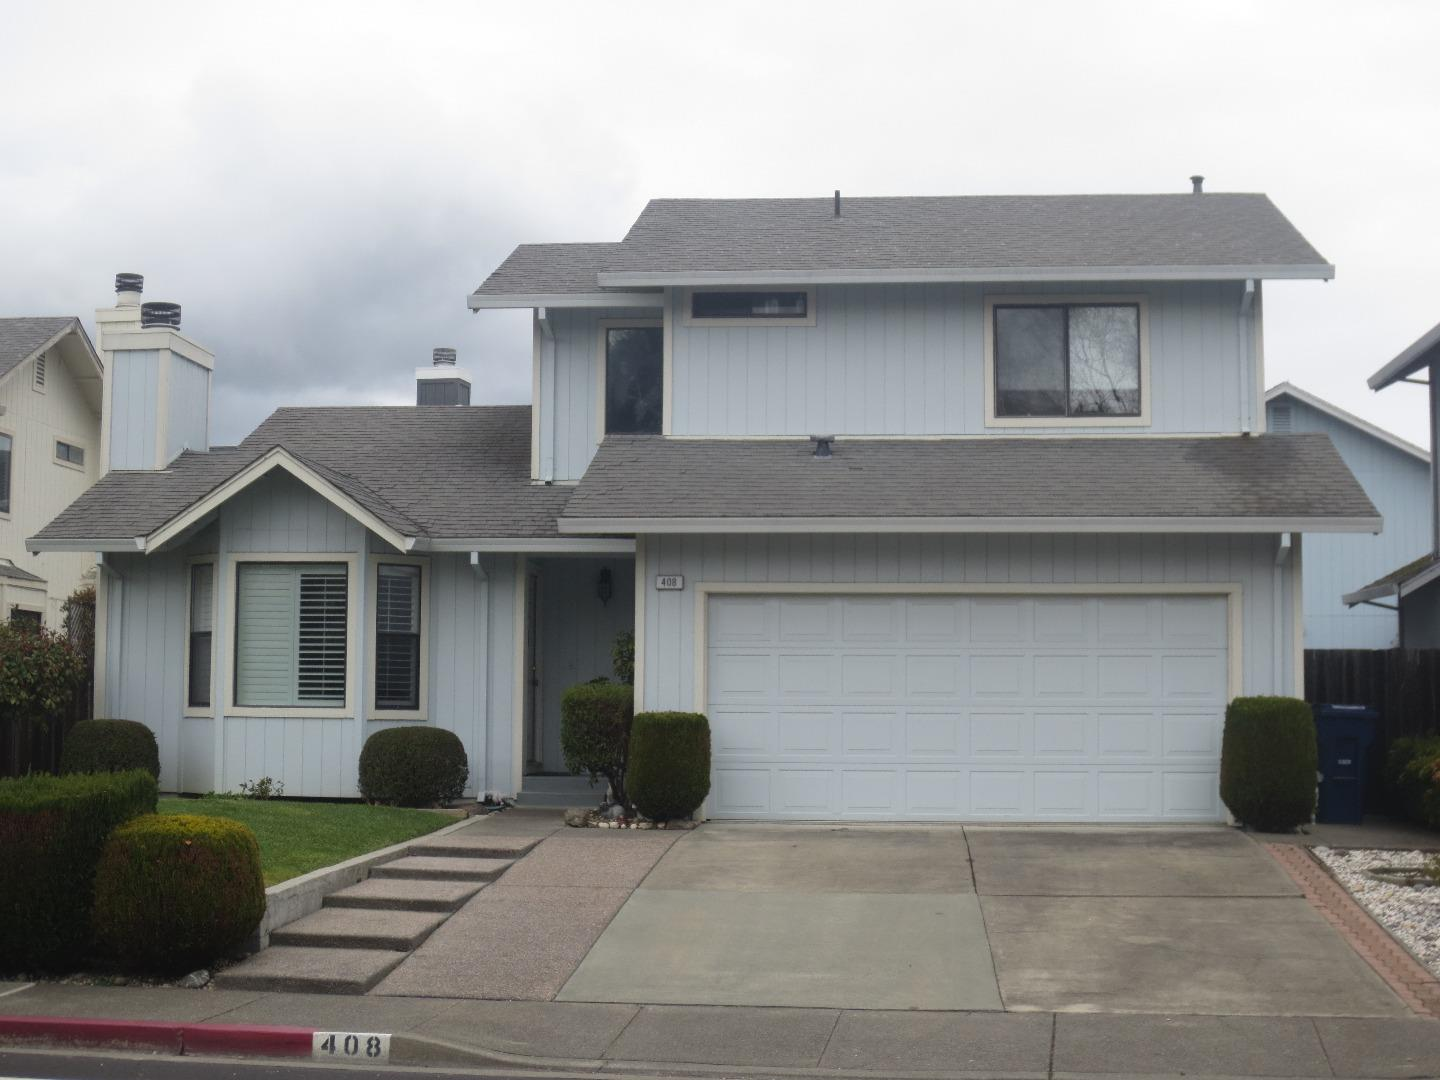 Single Family Home for Sale at 408 Wilford Lane 408 Wilford Lane Cotati, California 94931 United States